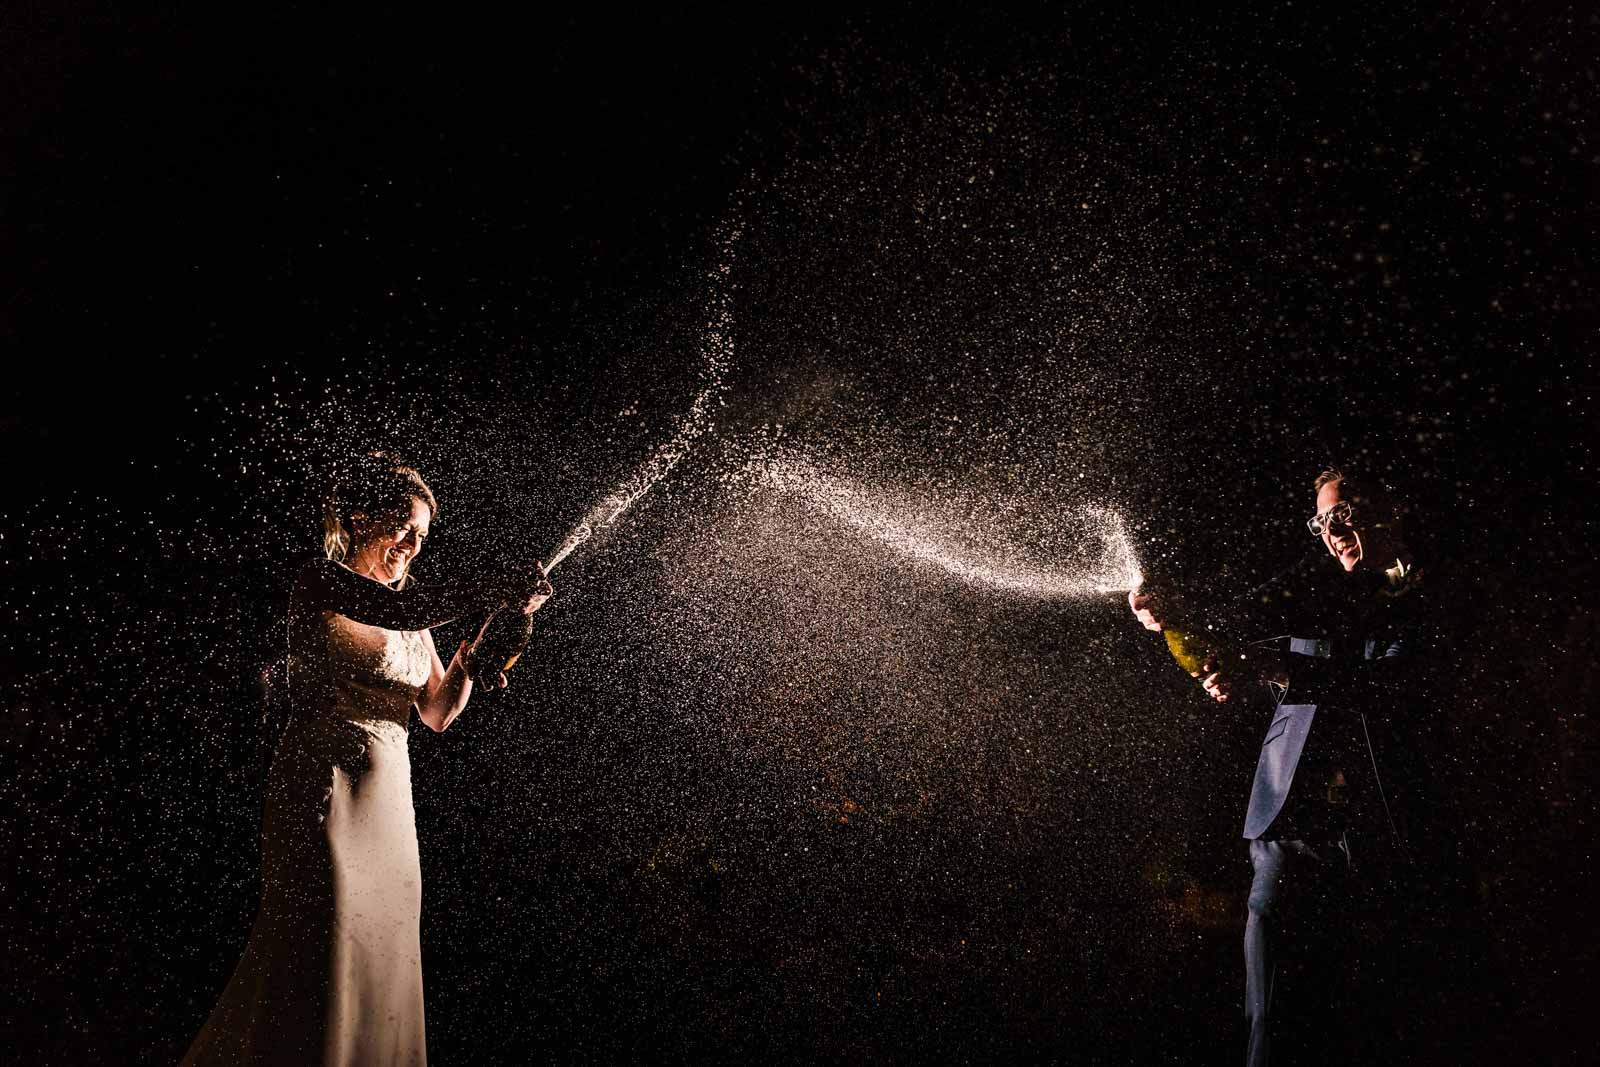 Champagne splash off camera flash photo of couple popping champagne bottle - creative wedding photography